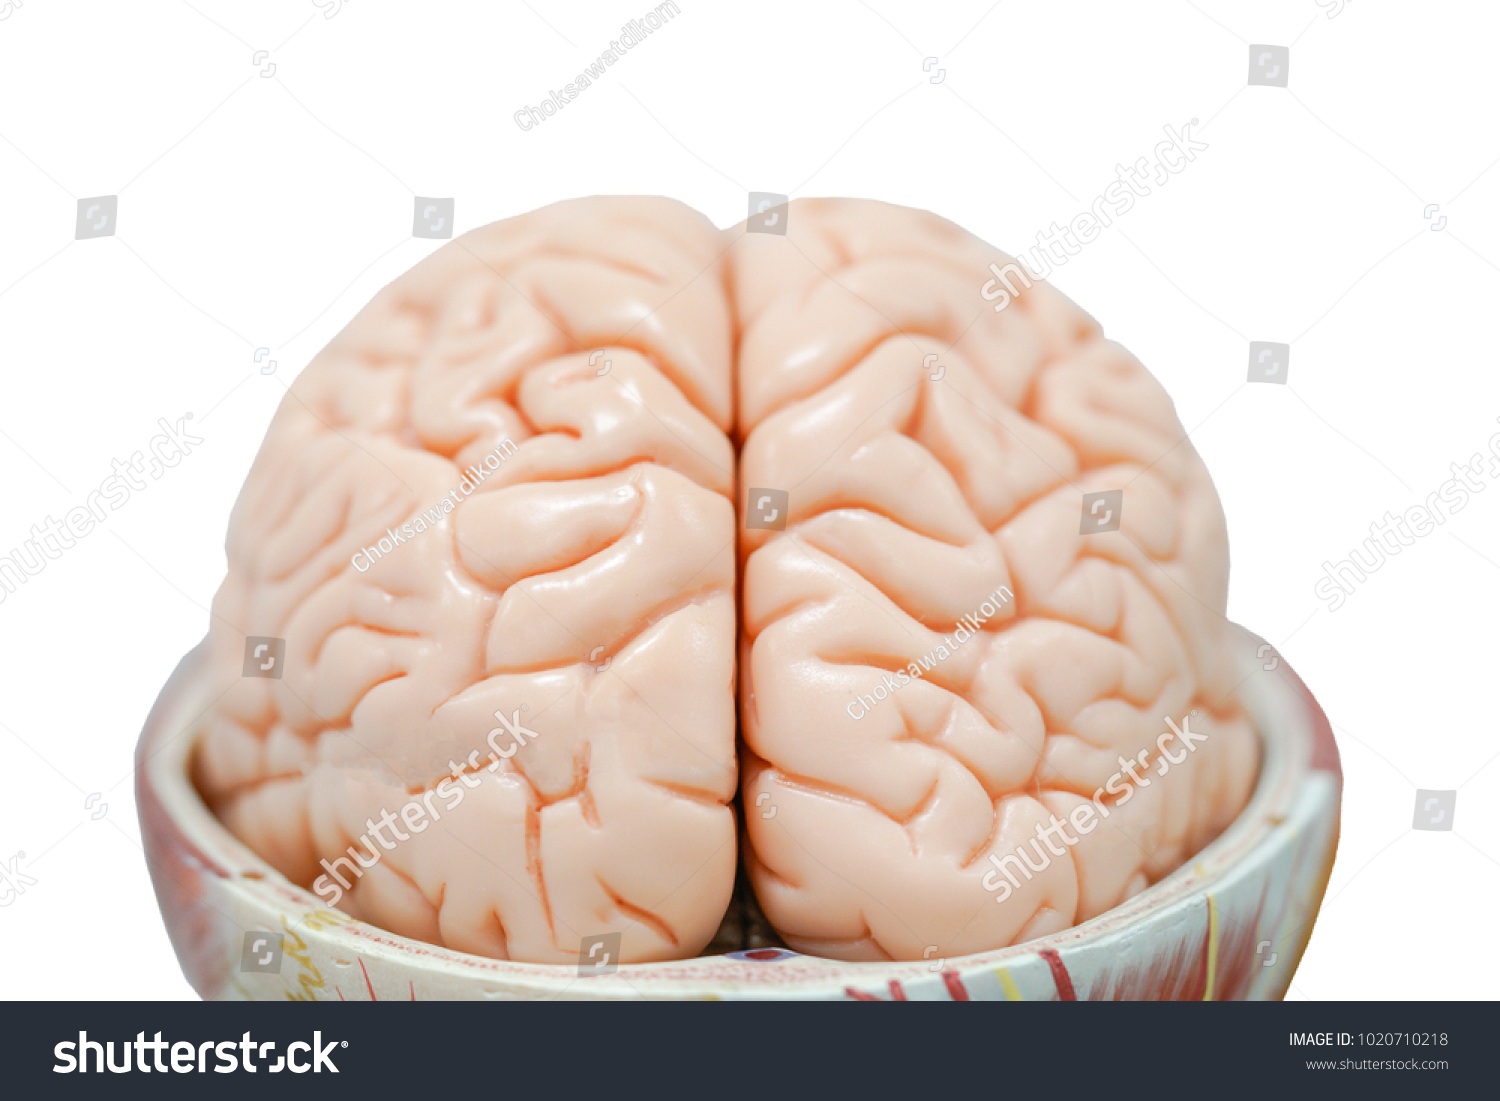 Human Brain Anatomy Model Education Physiology Stock Photo Edit Now